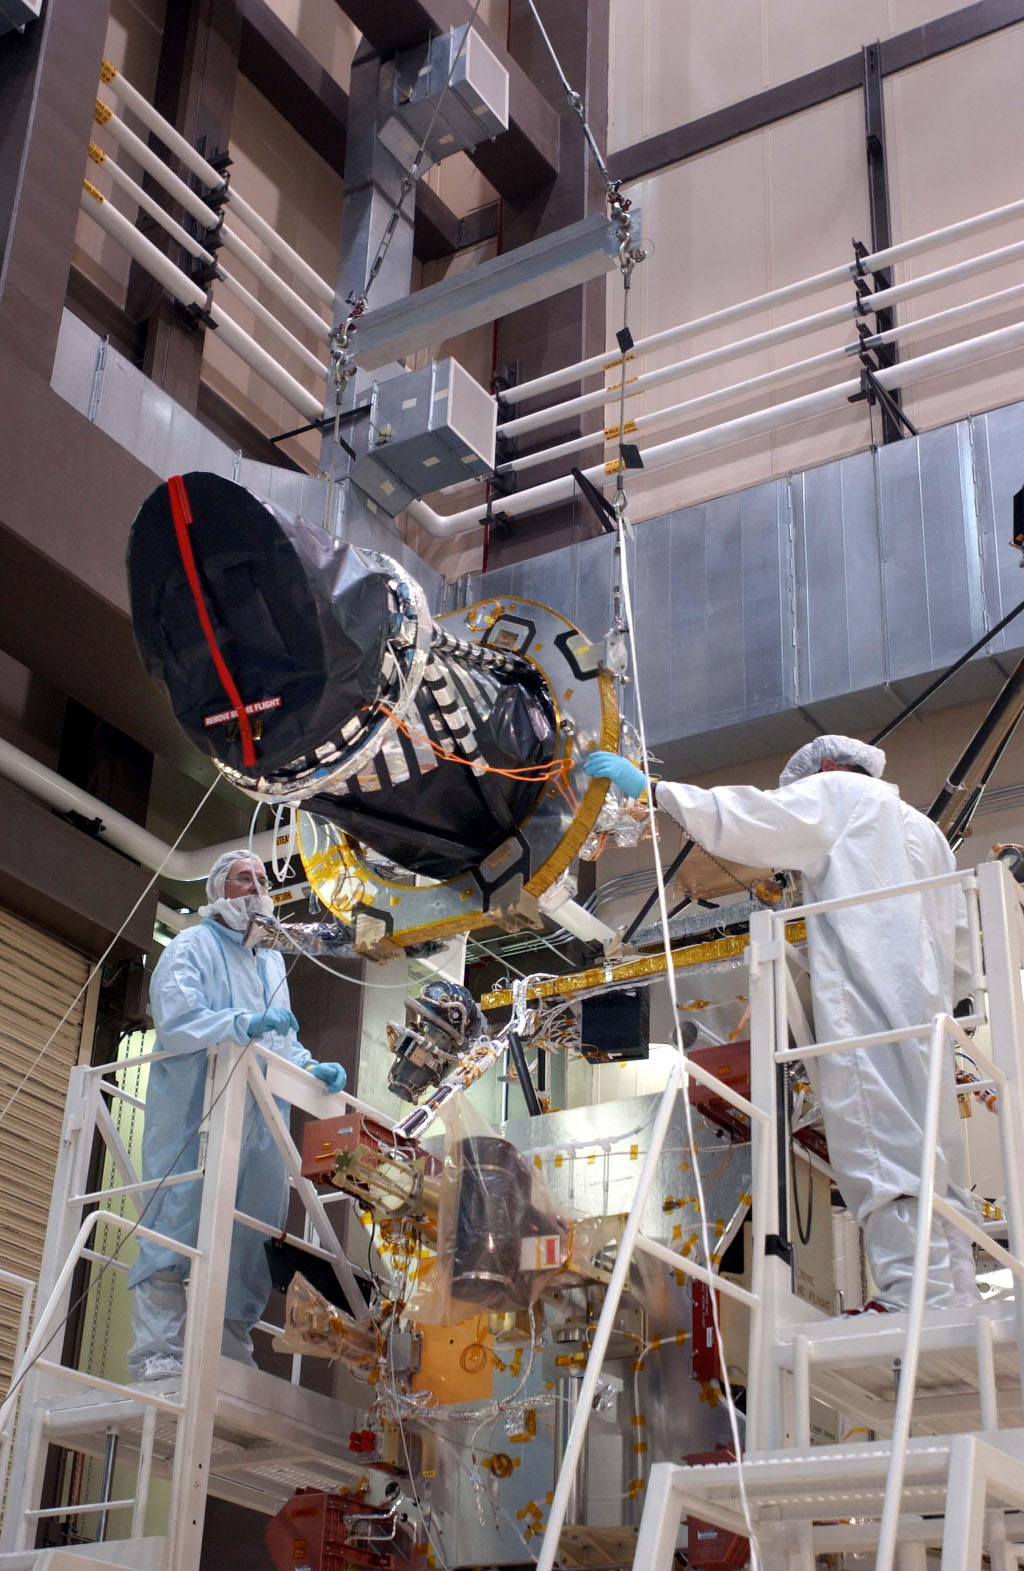 Workers at Lockheed Martin Space Systems, Denver, position a telescopic camera for installation onto NASA's Mars Reconnaissance Orbiter spacecraft on Dec. 11, 2004.